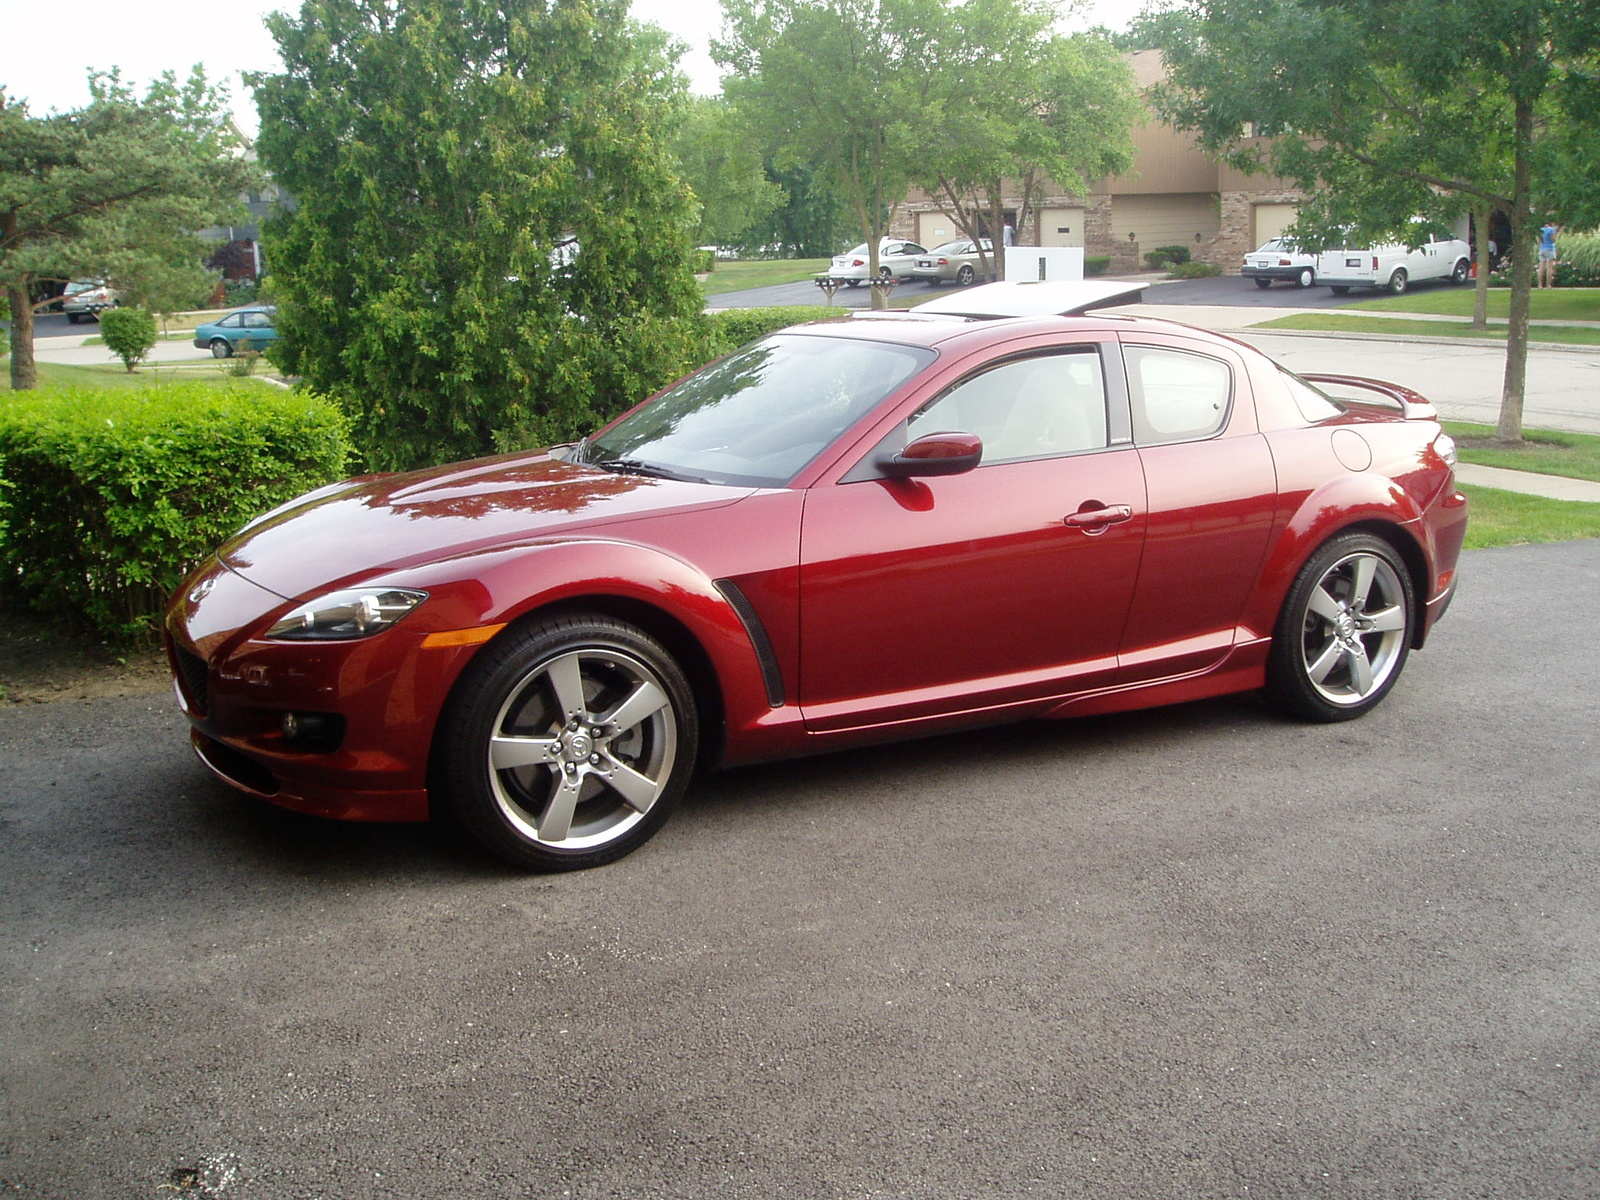 2006 mazda rx 8 pictures cargurus. Black Bedroom Furniture Sets. Home Design Ideas